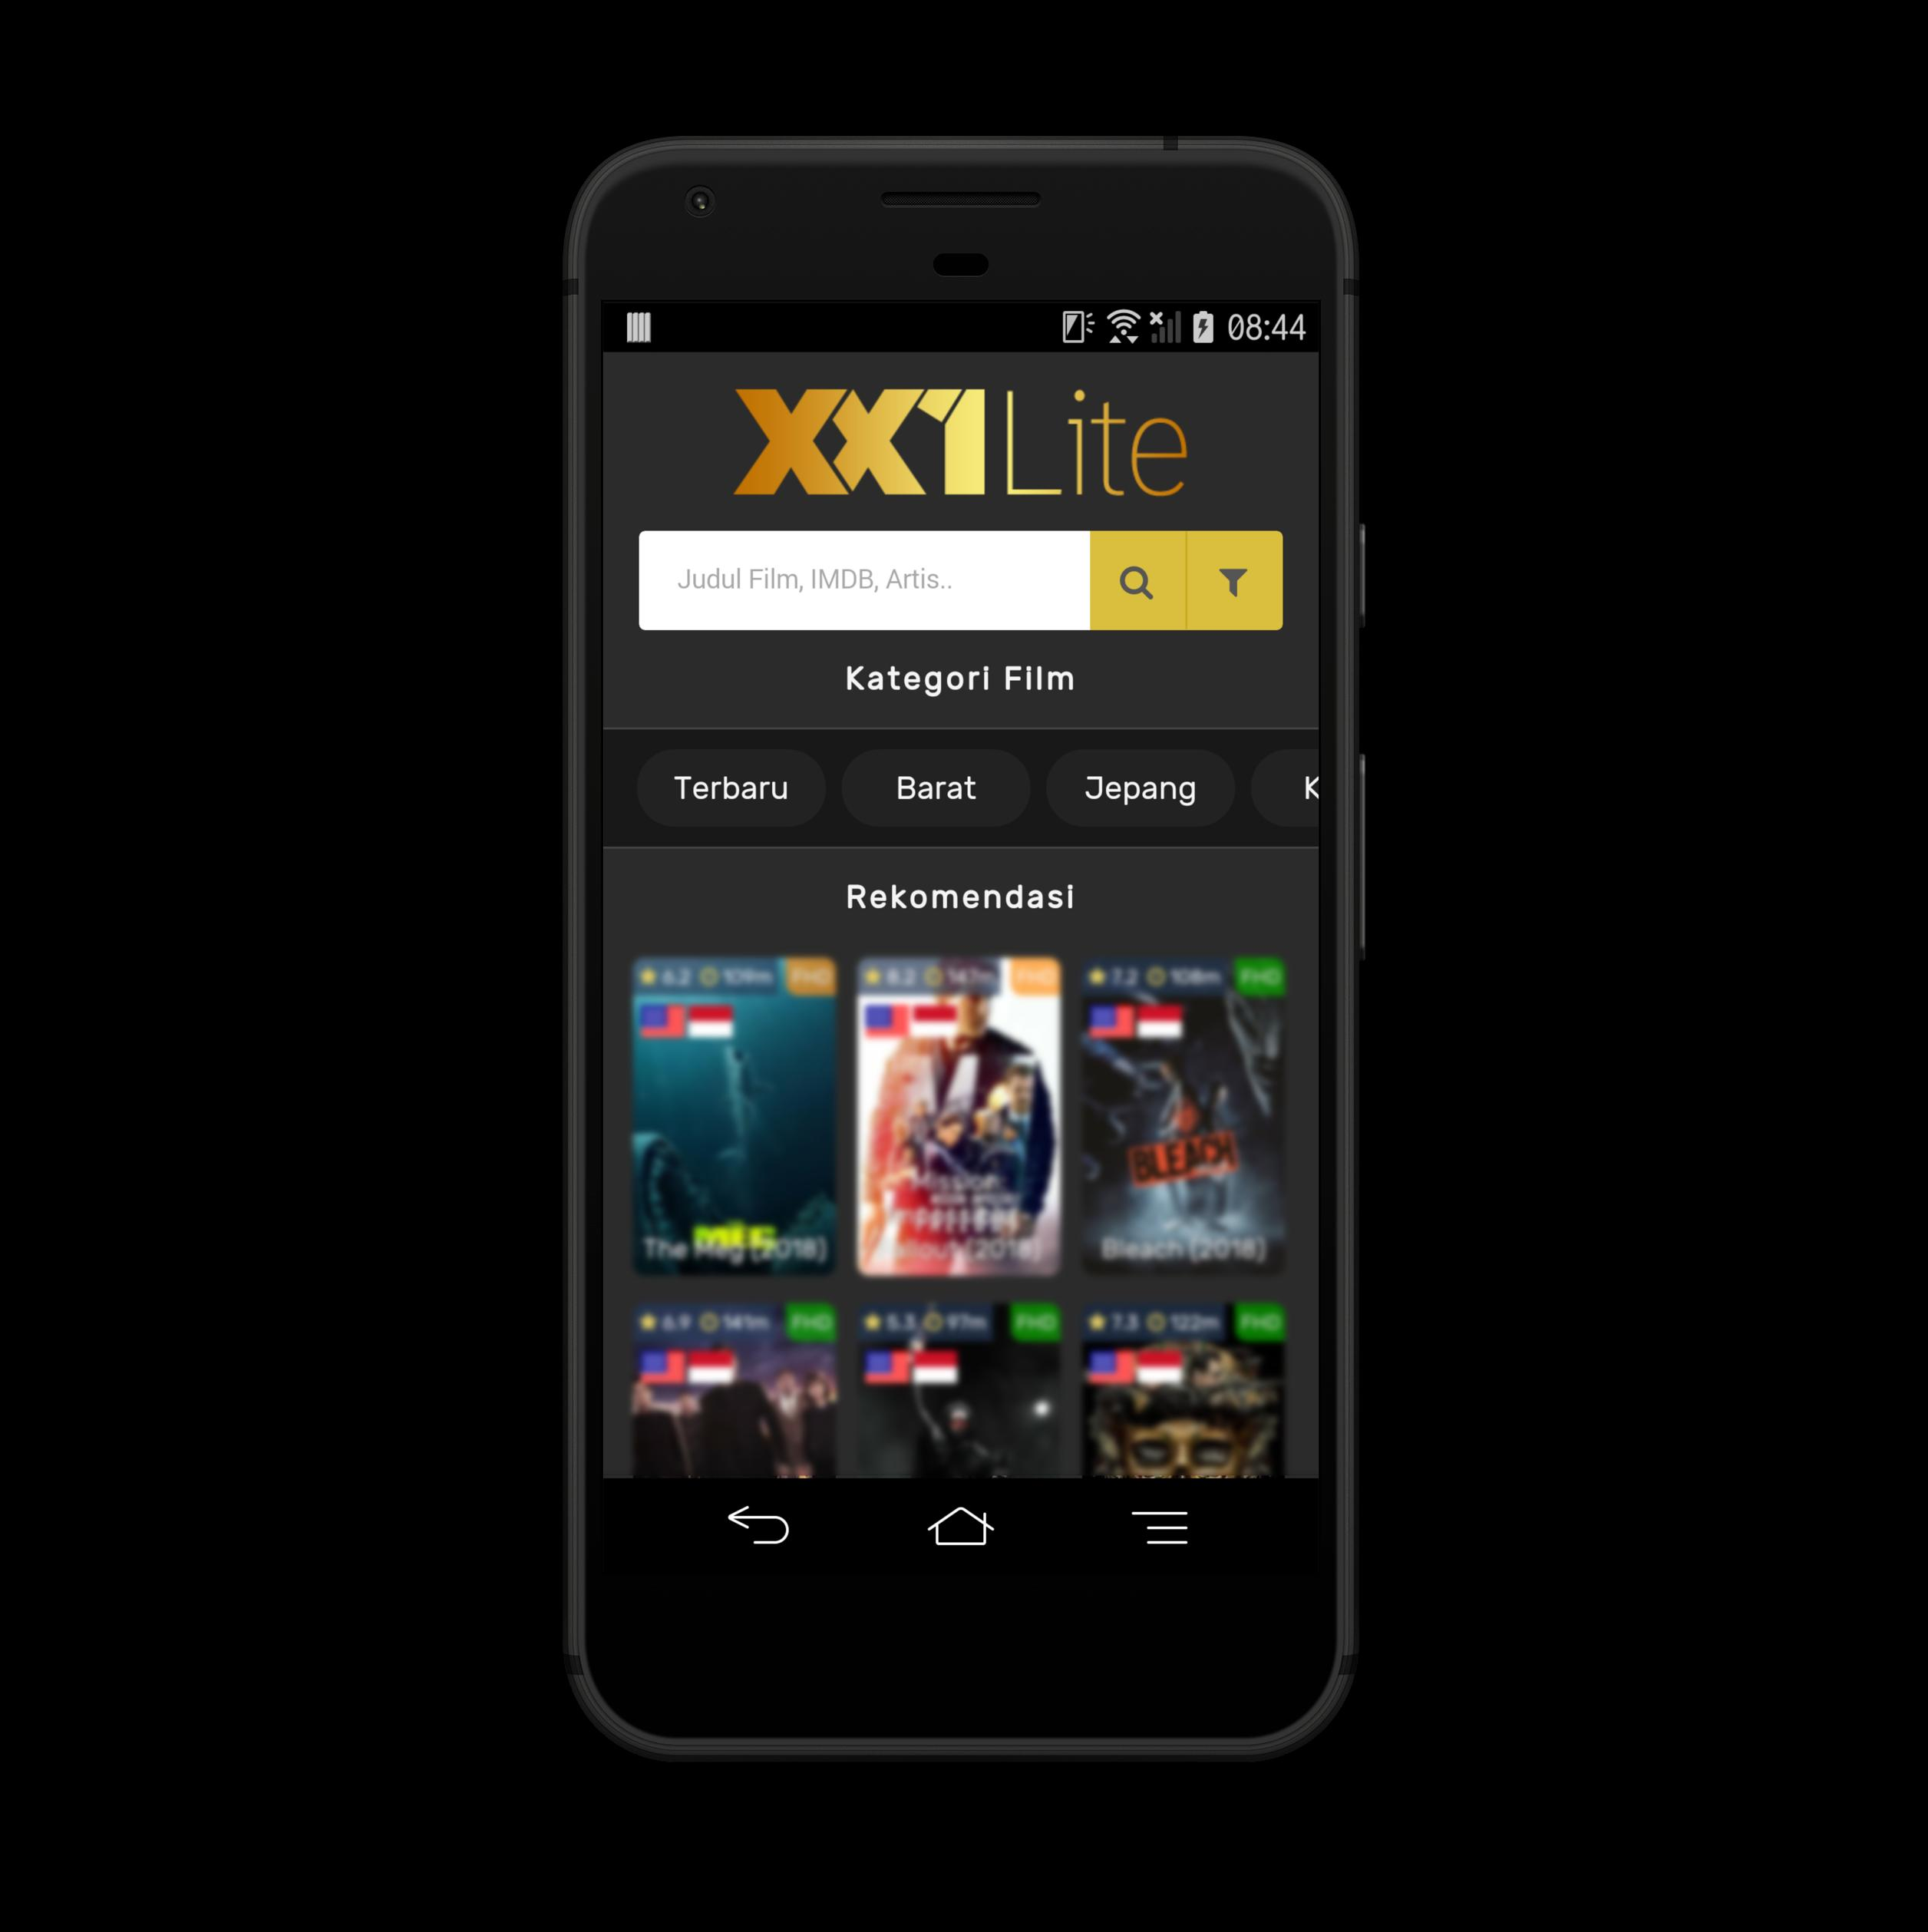 Indoxxi lite: Watch Movie for Android - APK Download